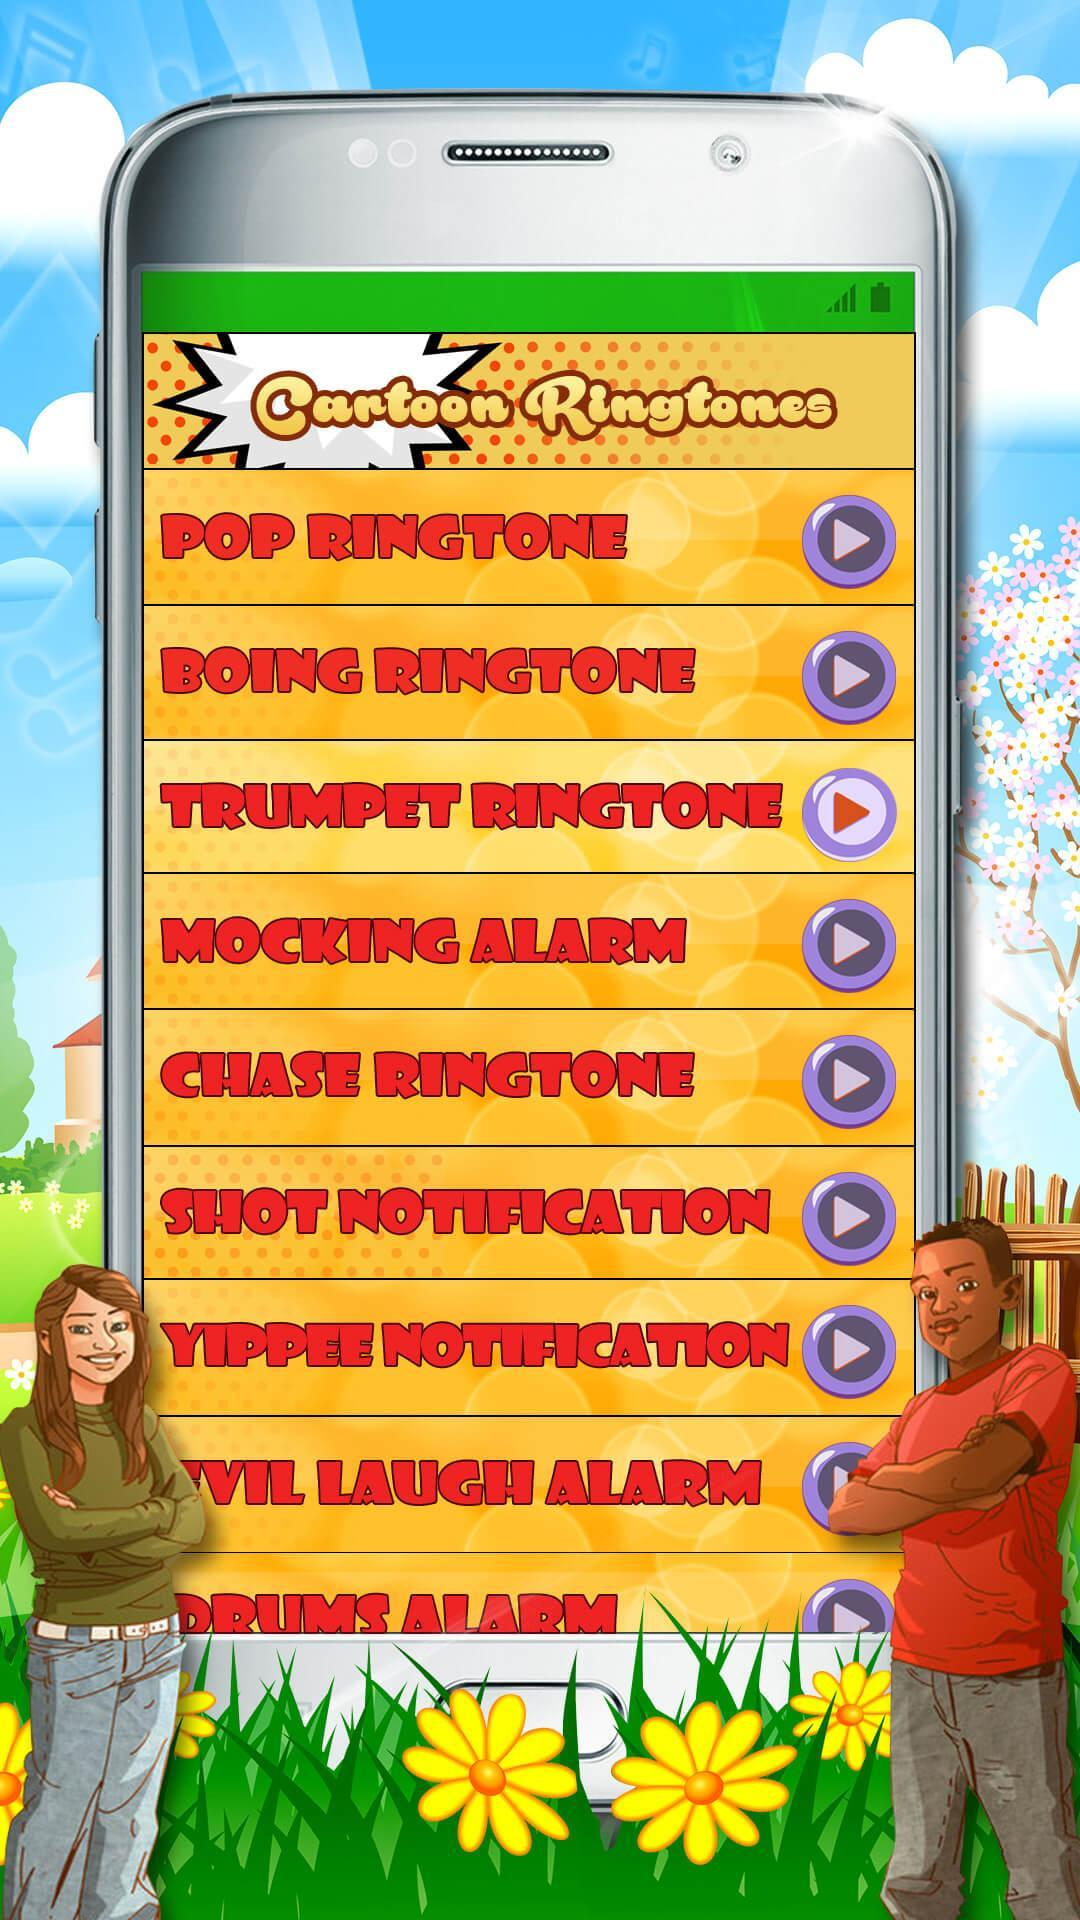 Cartoon Ringtones Free 😜 Funny Sound Effects for Android - APK Download